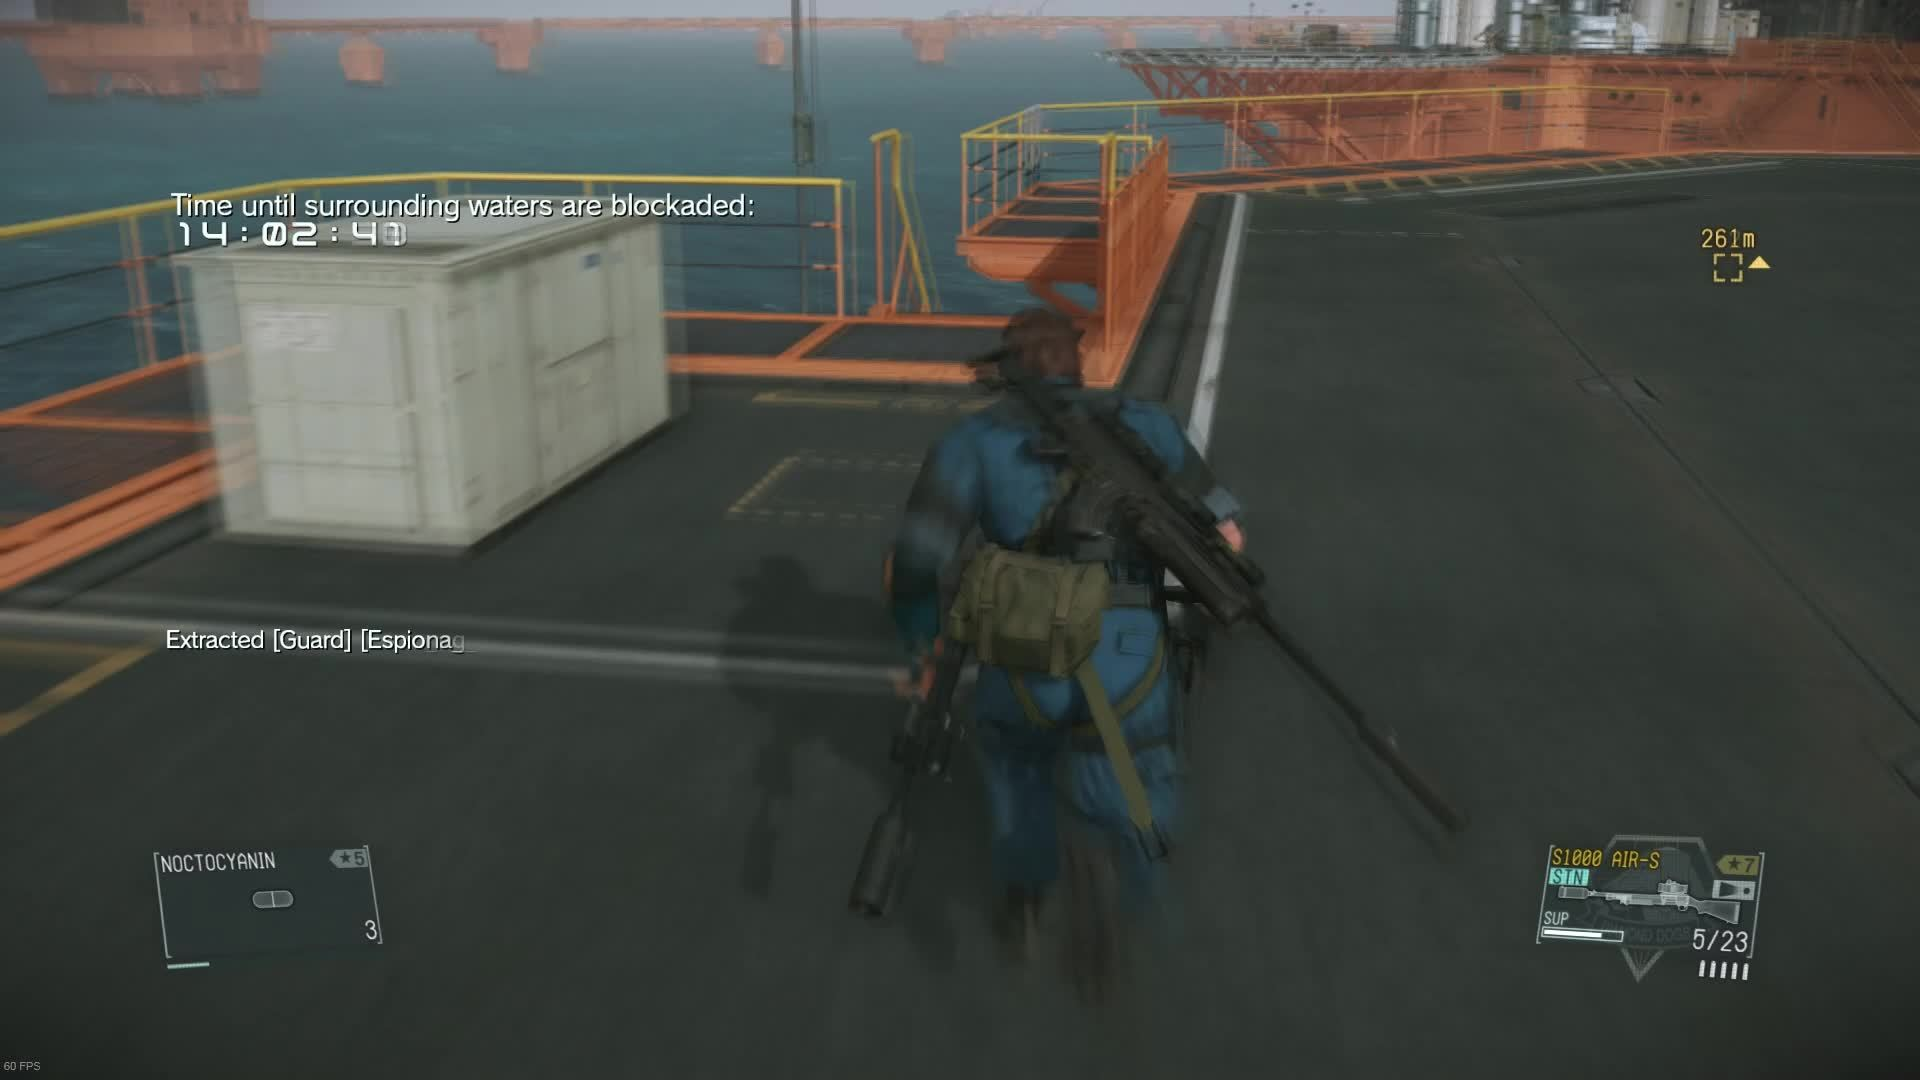 metalgearsolid, How to not take down a guard GIFs